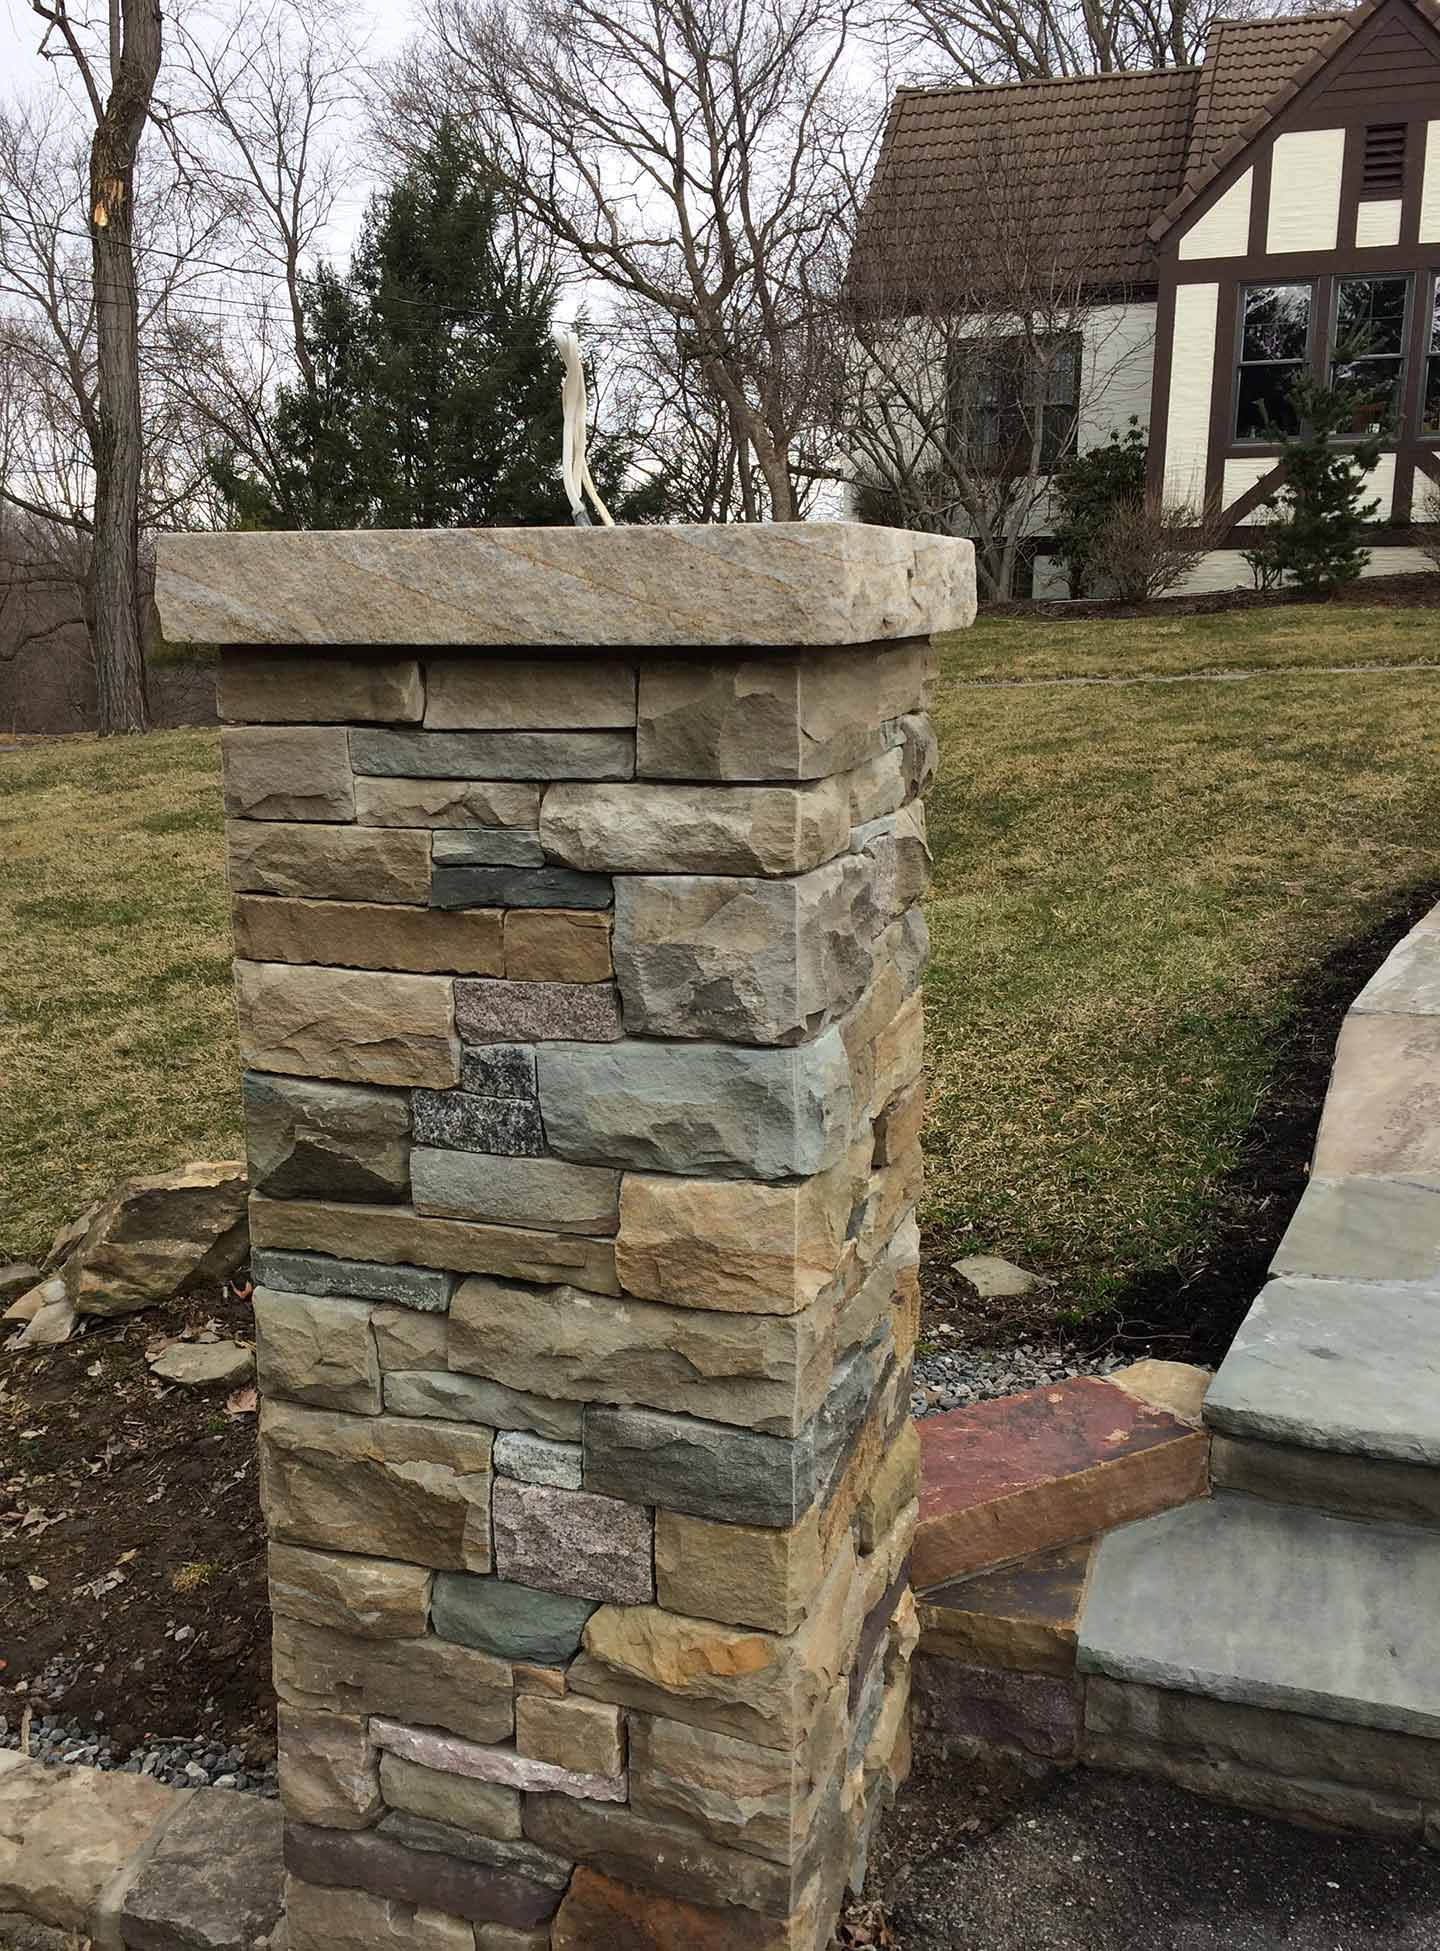 Outdoor-Feature-03-27-19-1